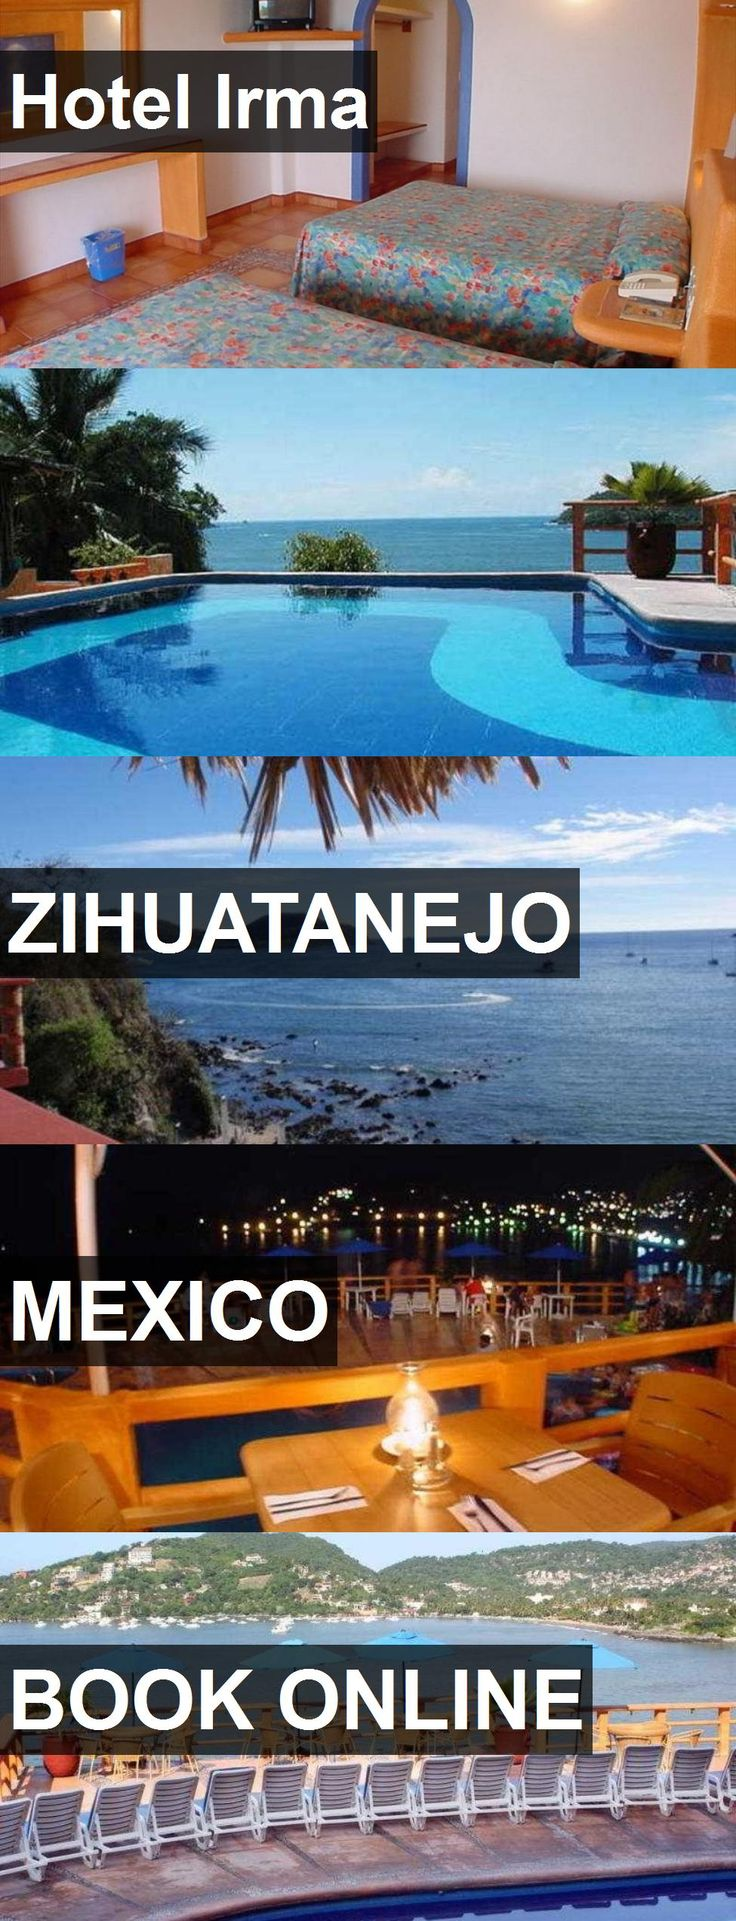 Hotel Hotel Irma in Zihuatanejo, Mexico. For more information, photos, reviews and best prices please follow the link. #Mexico #Zihuatanejo #HotelIrma #hotel #travel #vacation